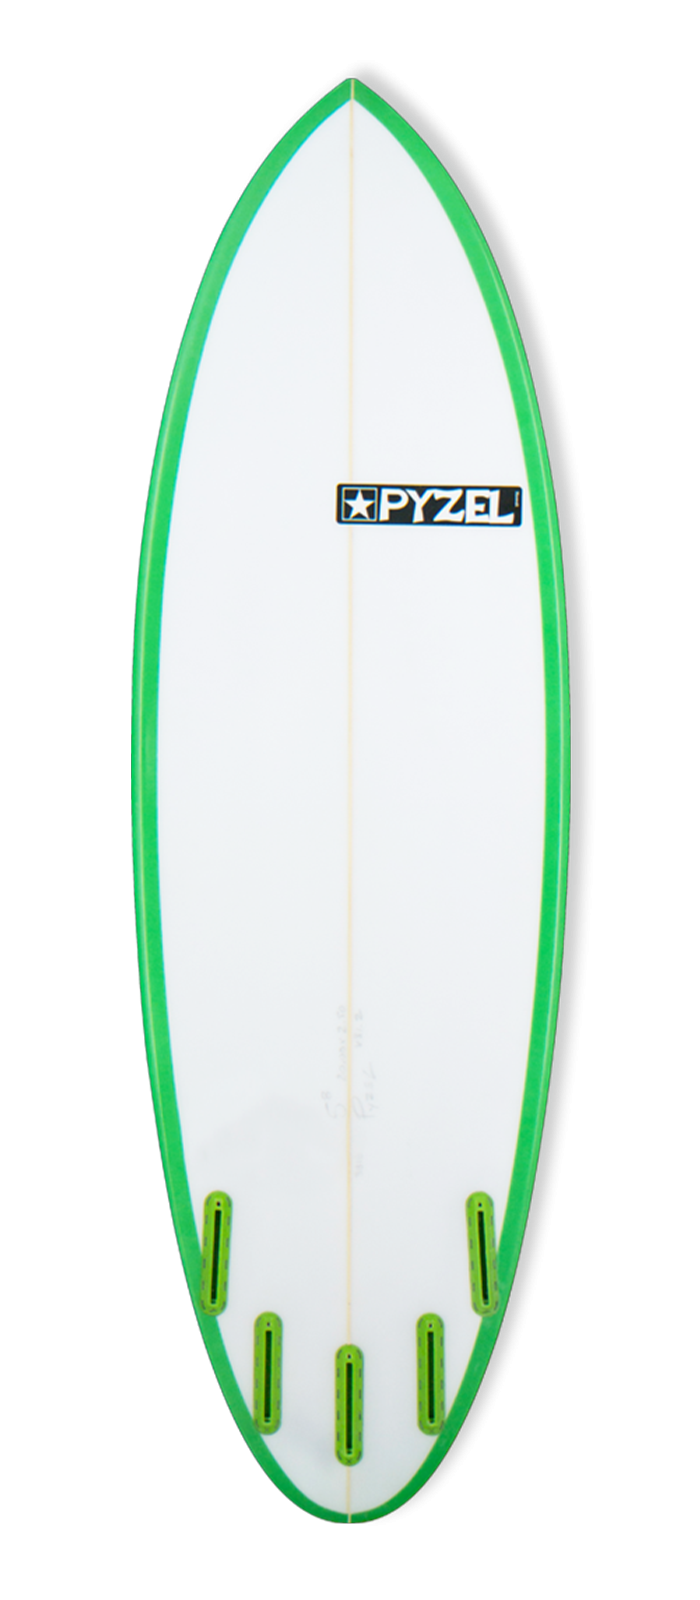 THE NUGGET surfboard model bottom